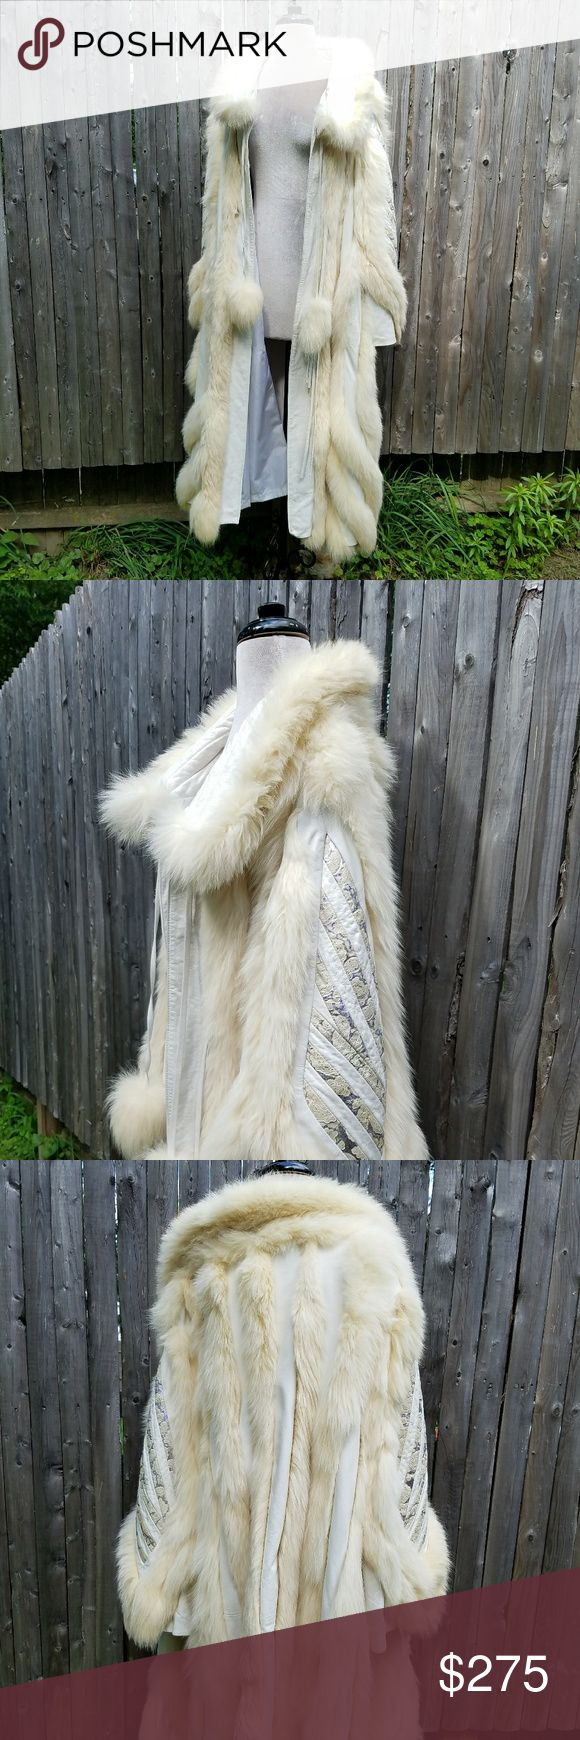 Fox Leather Vintage Maxi Wizard Magic Coat Boho Really incredible vintage, unique find! Made in Holland by Alain Dykstra for Badoux. Stunning design with purple and gold inlay brocade leather detail on the bell sleeves and sides. Tie front clasps with fur pom poms.  White leather with cream fur detail and trim. Monogrammed on the interior. Saw some staining on the lining shown in photos. Very bohemian winter princess coat! Labeled a medium but would absolutely accommodate a large or extra…